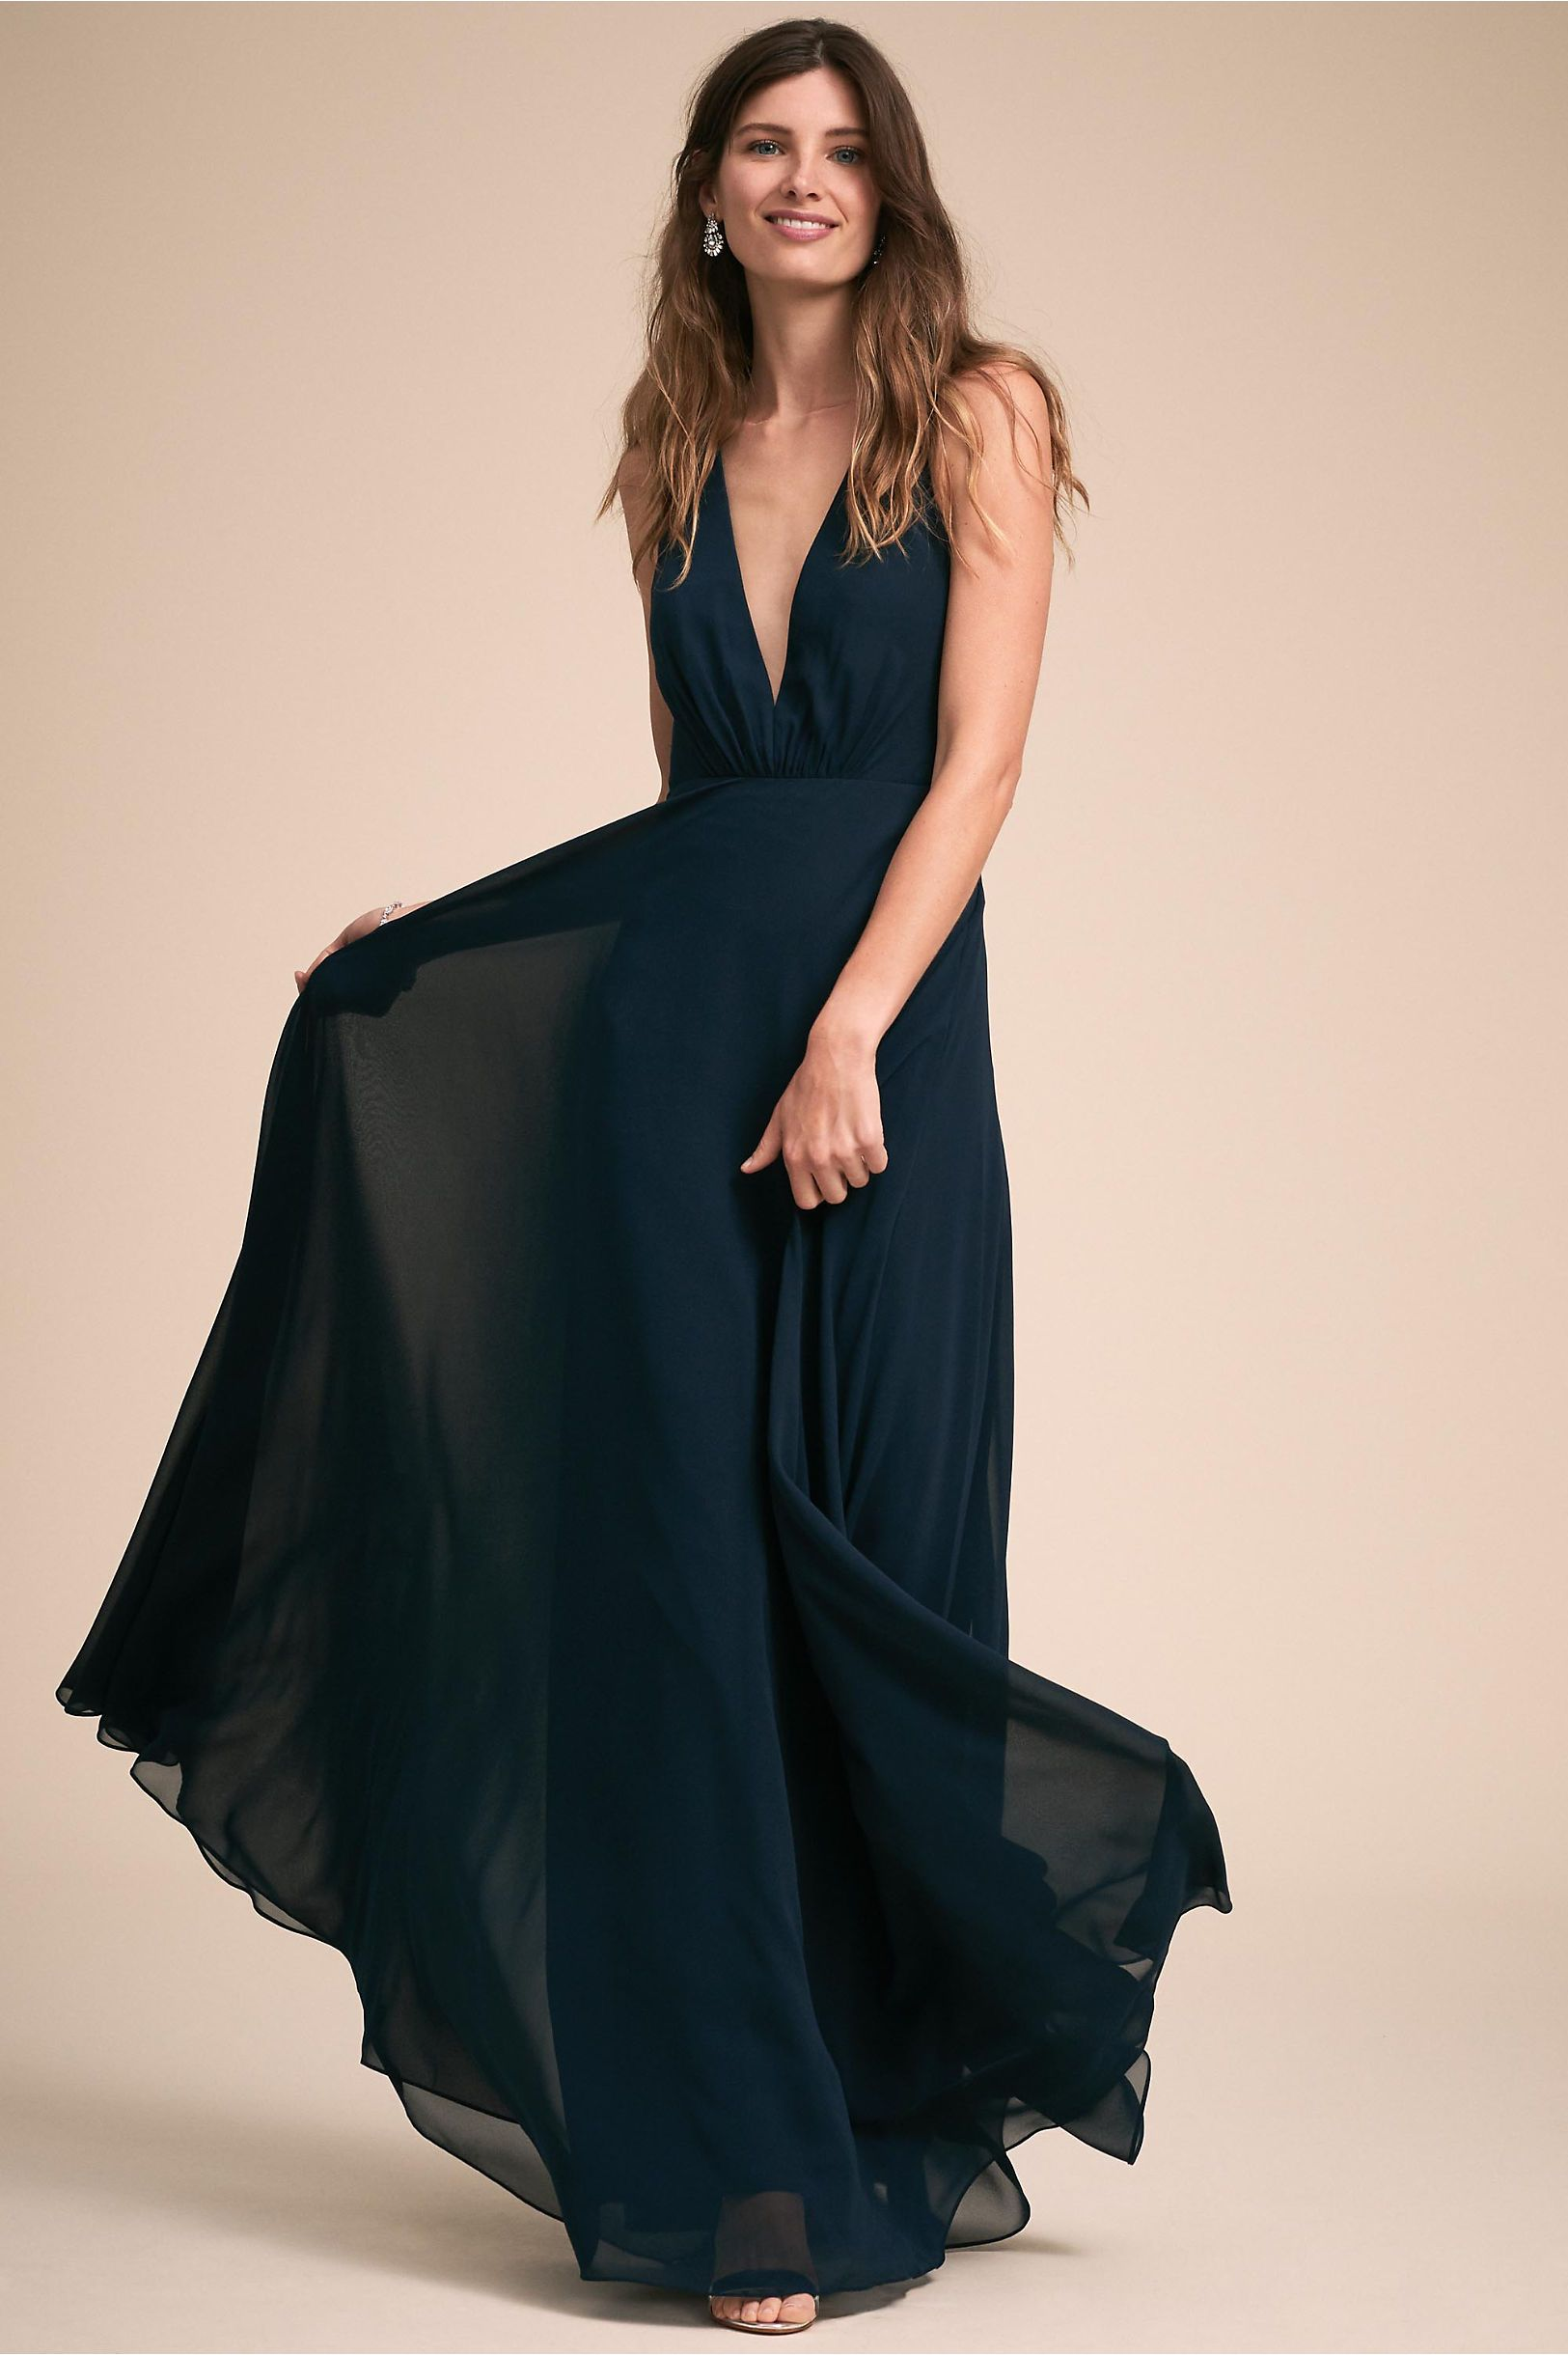 481d348447db BHLDN s Jenny Yoo Ryan Dress in Navy